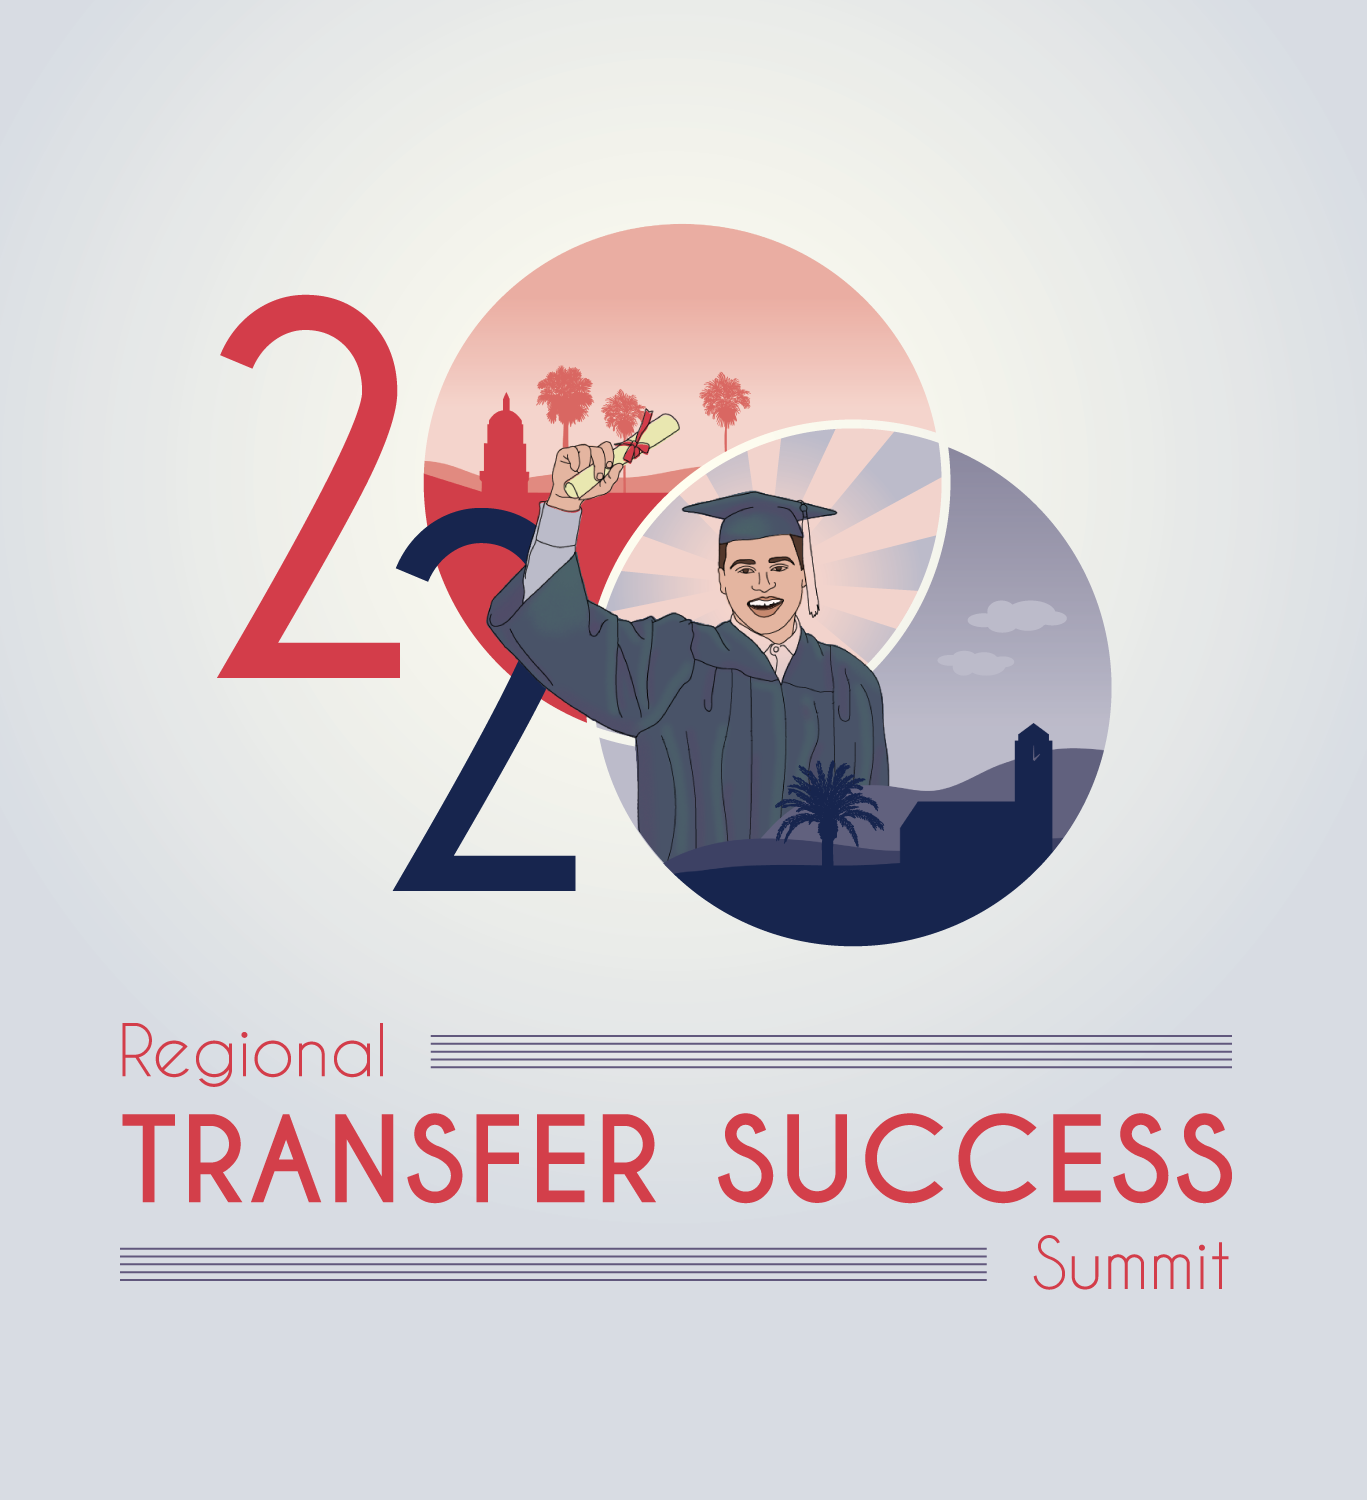 2020 Regional Transfer Success Summit